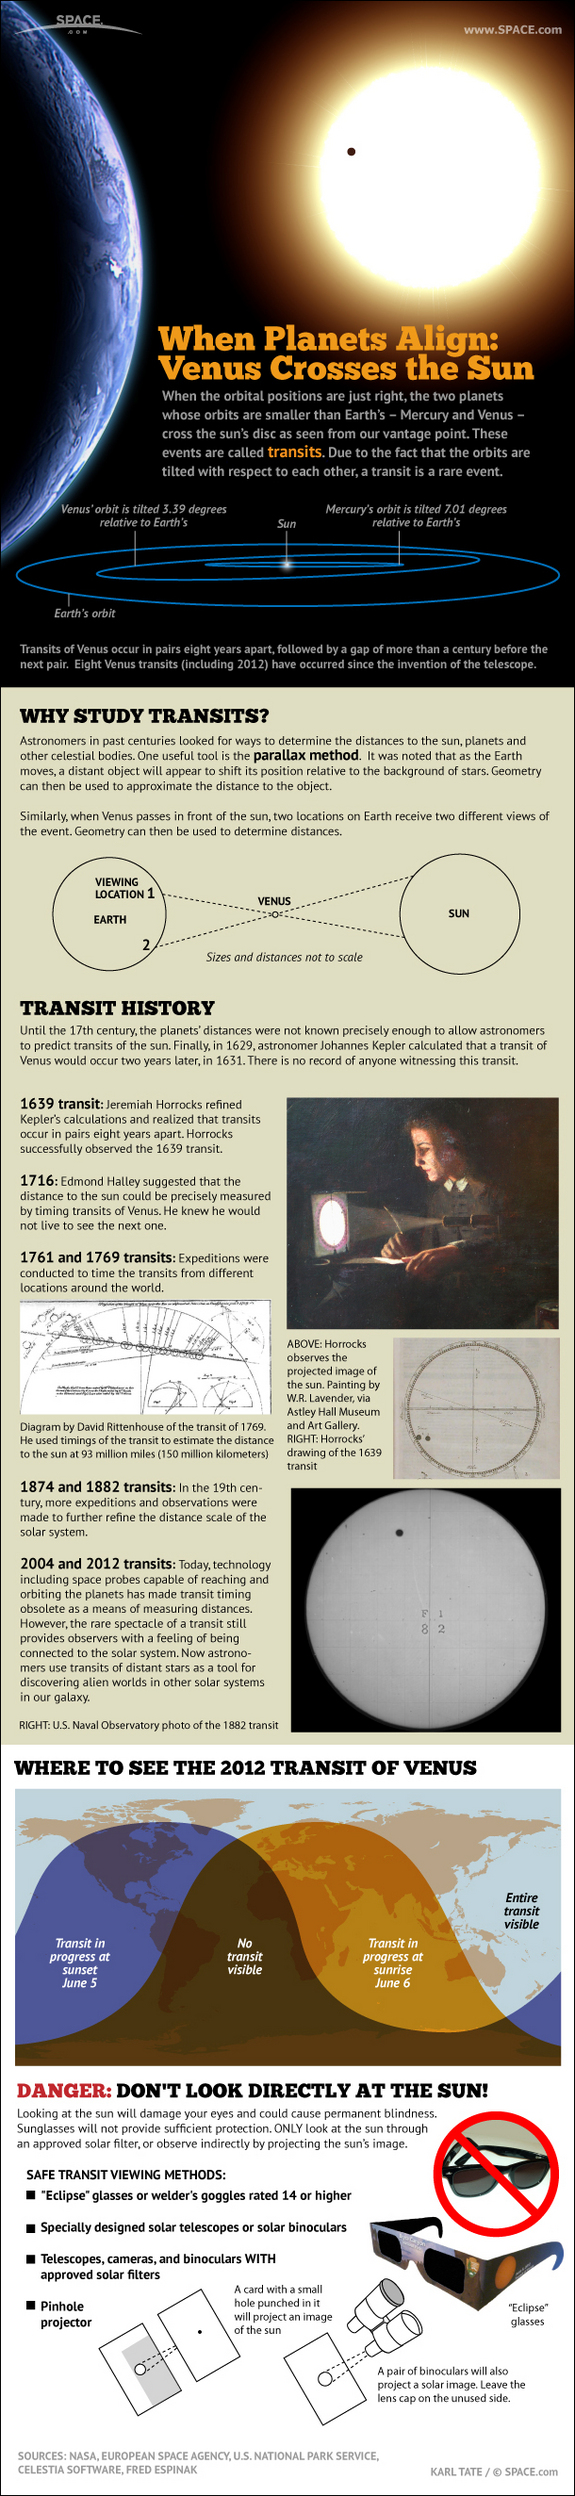 Find out about the planet Venus' dramatic trip across the face of the sun in June 2012 in this SPACE.com infographic.